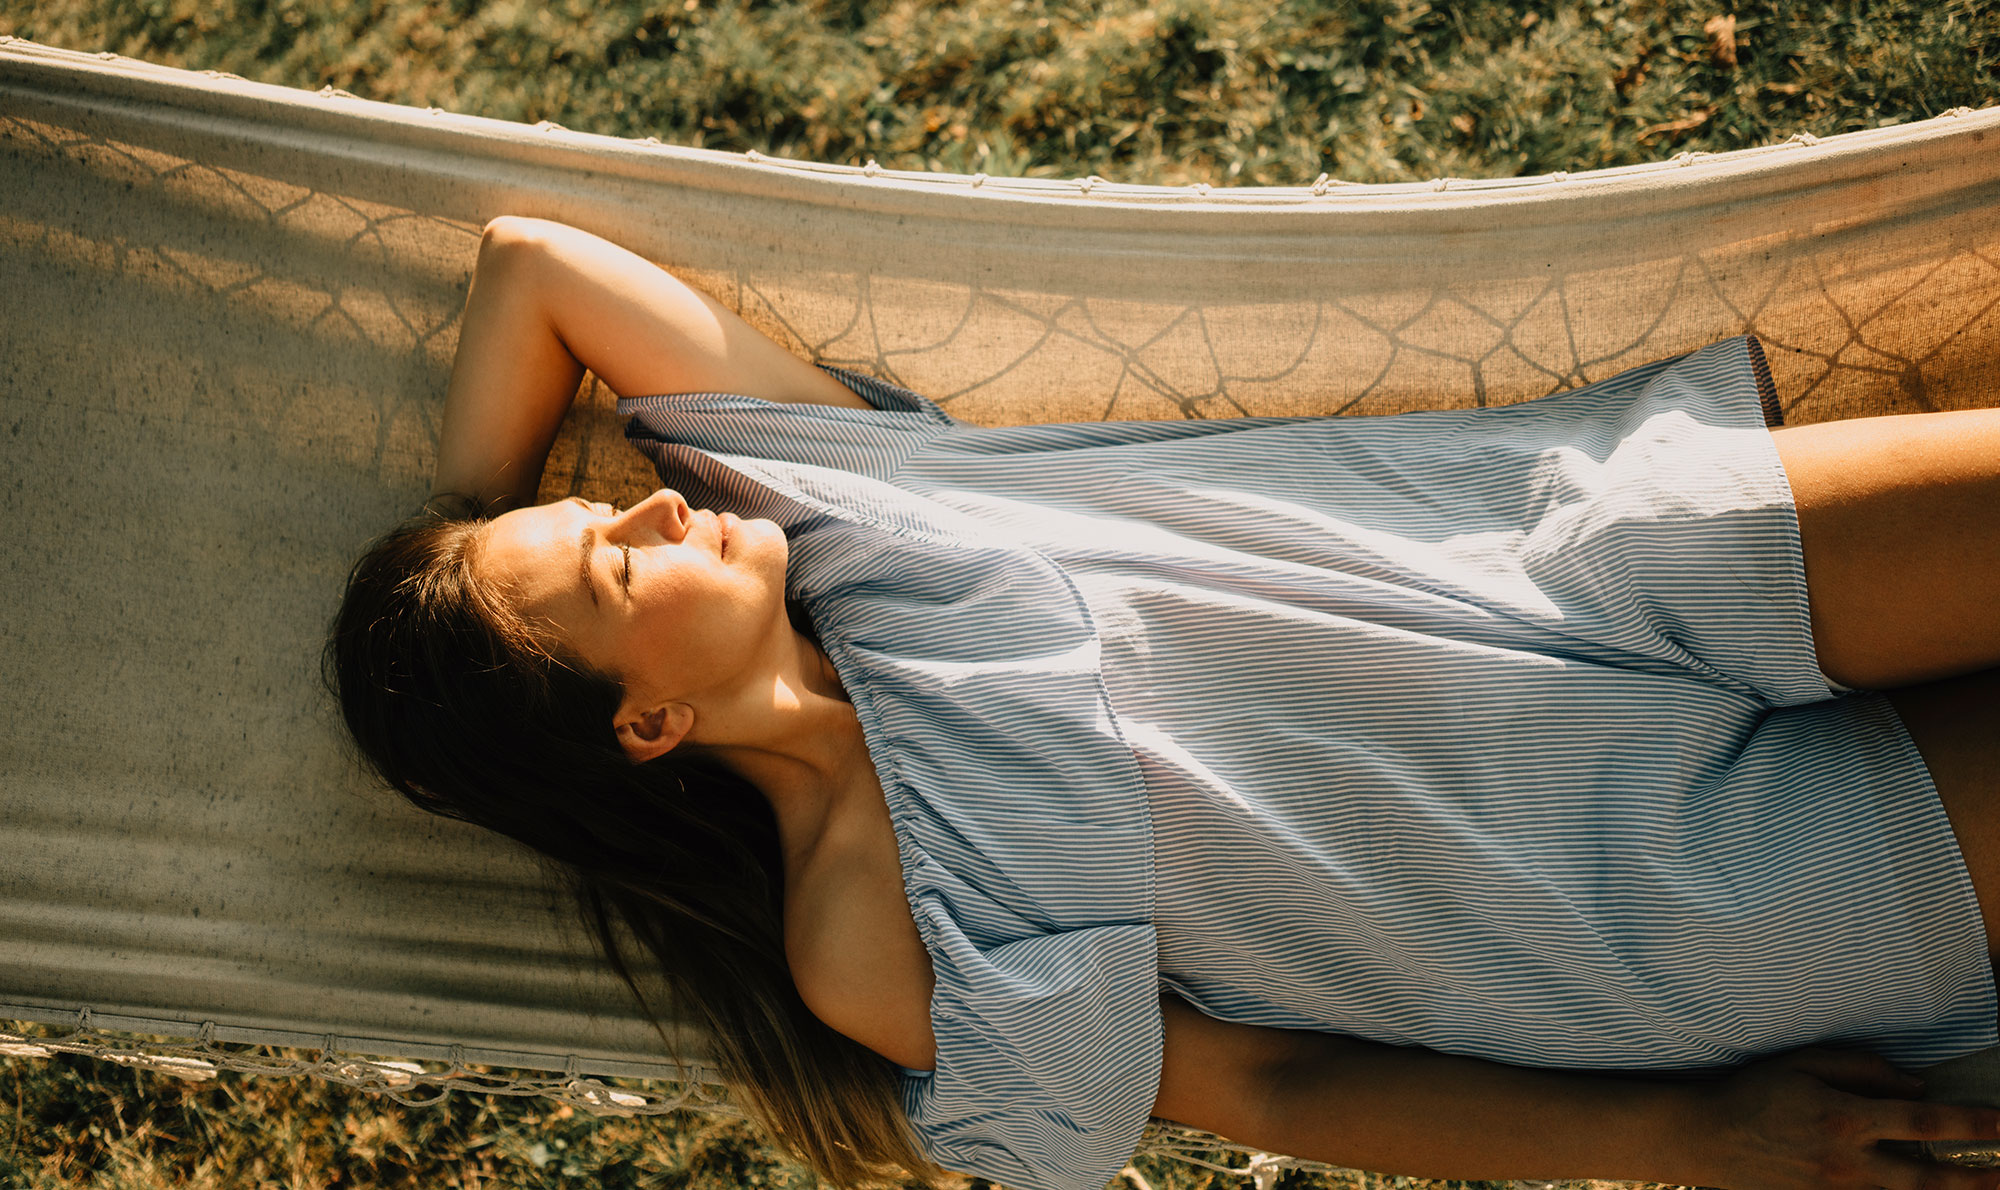 Woman lying in hammock at sunset